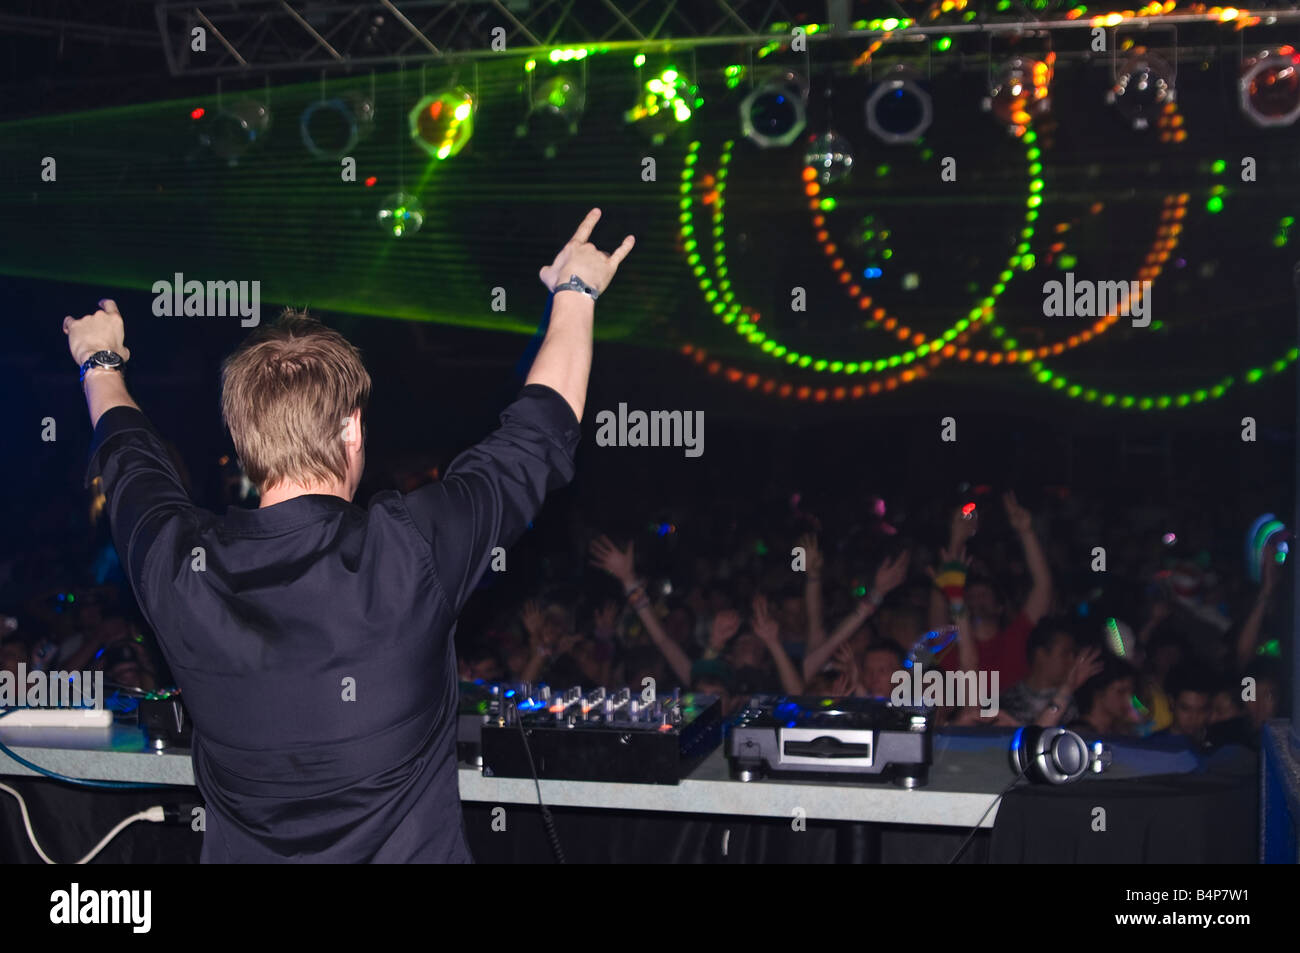 Ferry Corsten performing in the U S A for Insomniac Events at Quest - Stock Image